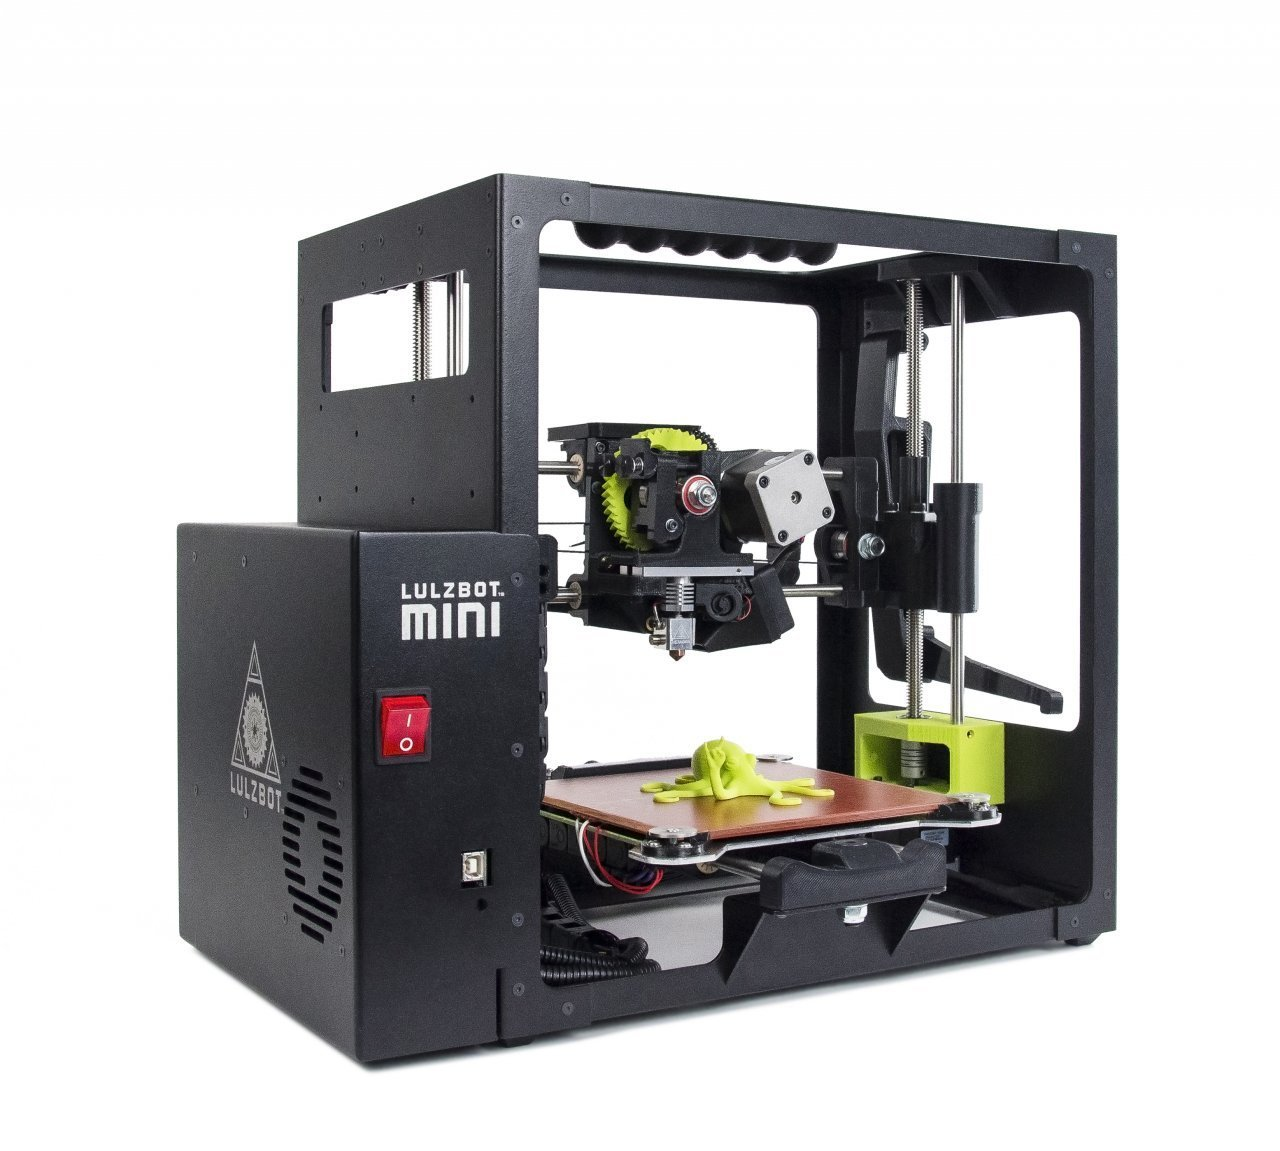 3D Printer LulzBot Mini